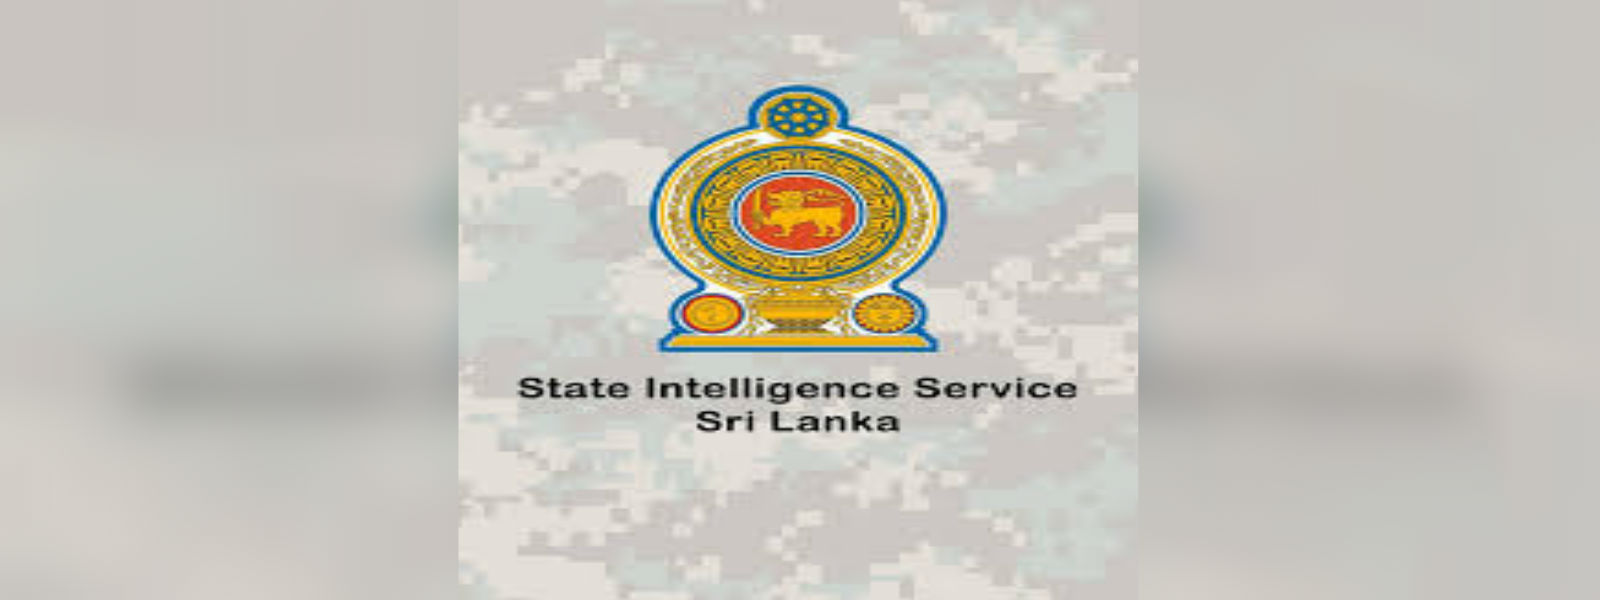 Brigadier Suresh Sallay appointed as the Head of State Intelligence